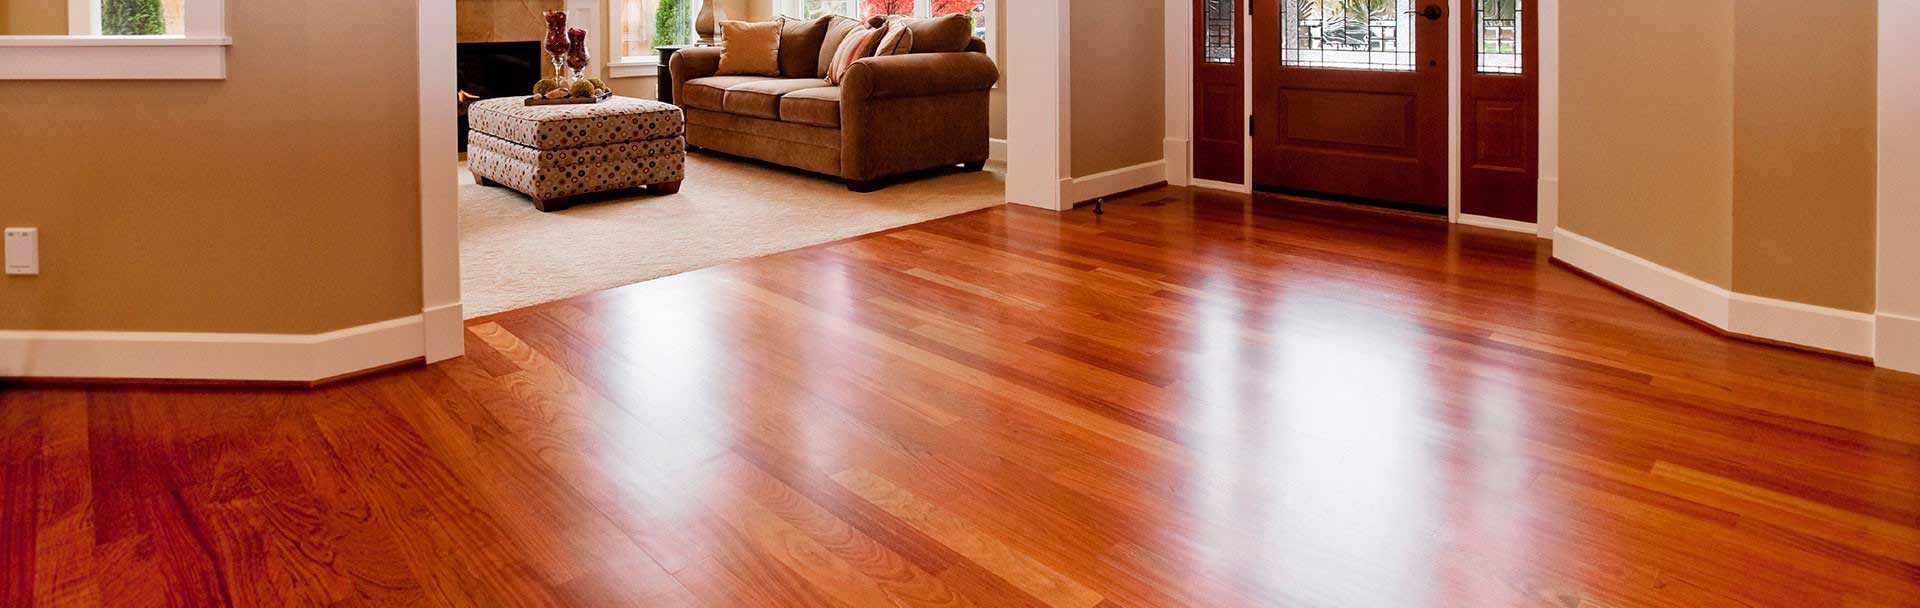 hardwood floor refinishing, Sunnyvale, Mountain View, Palo Alto, Saratoga, Menlo Park, cupertino flooring